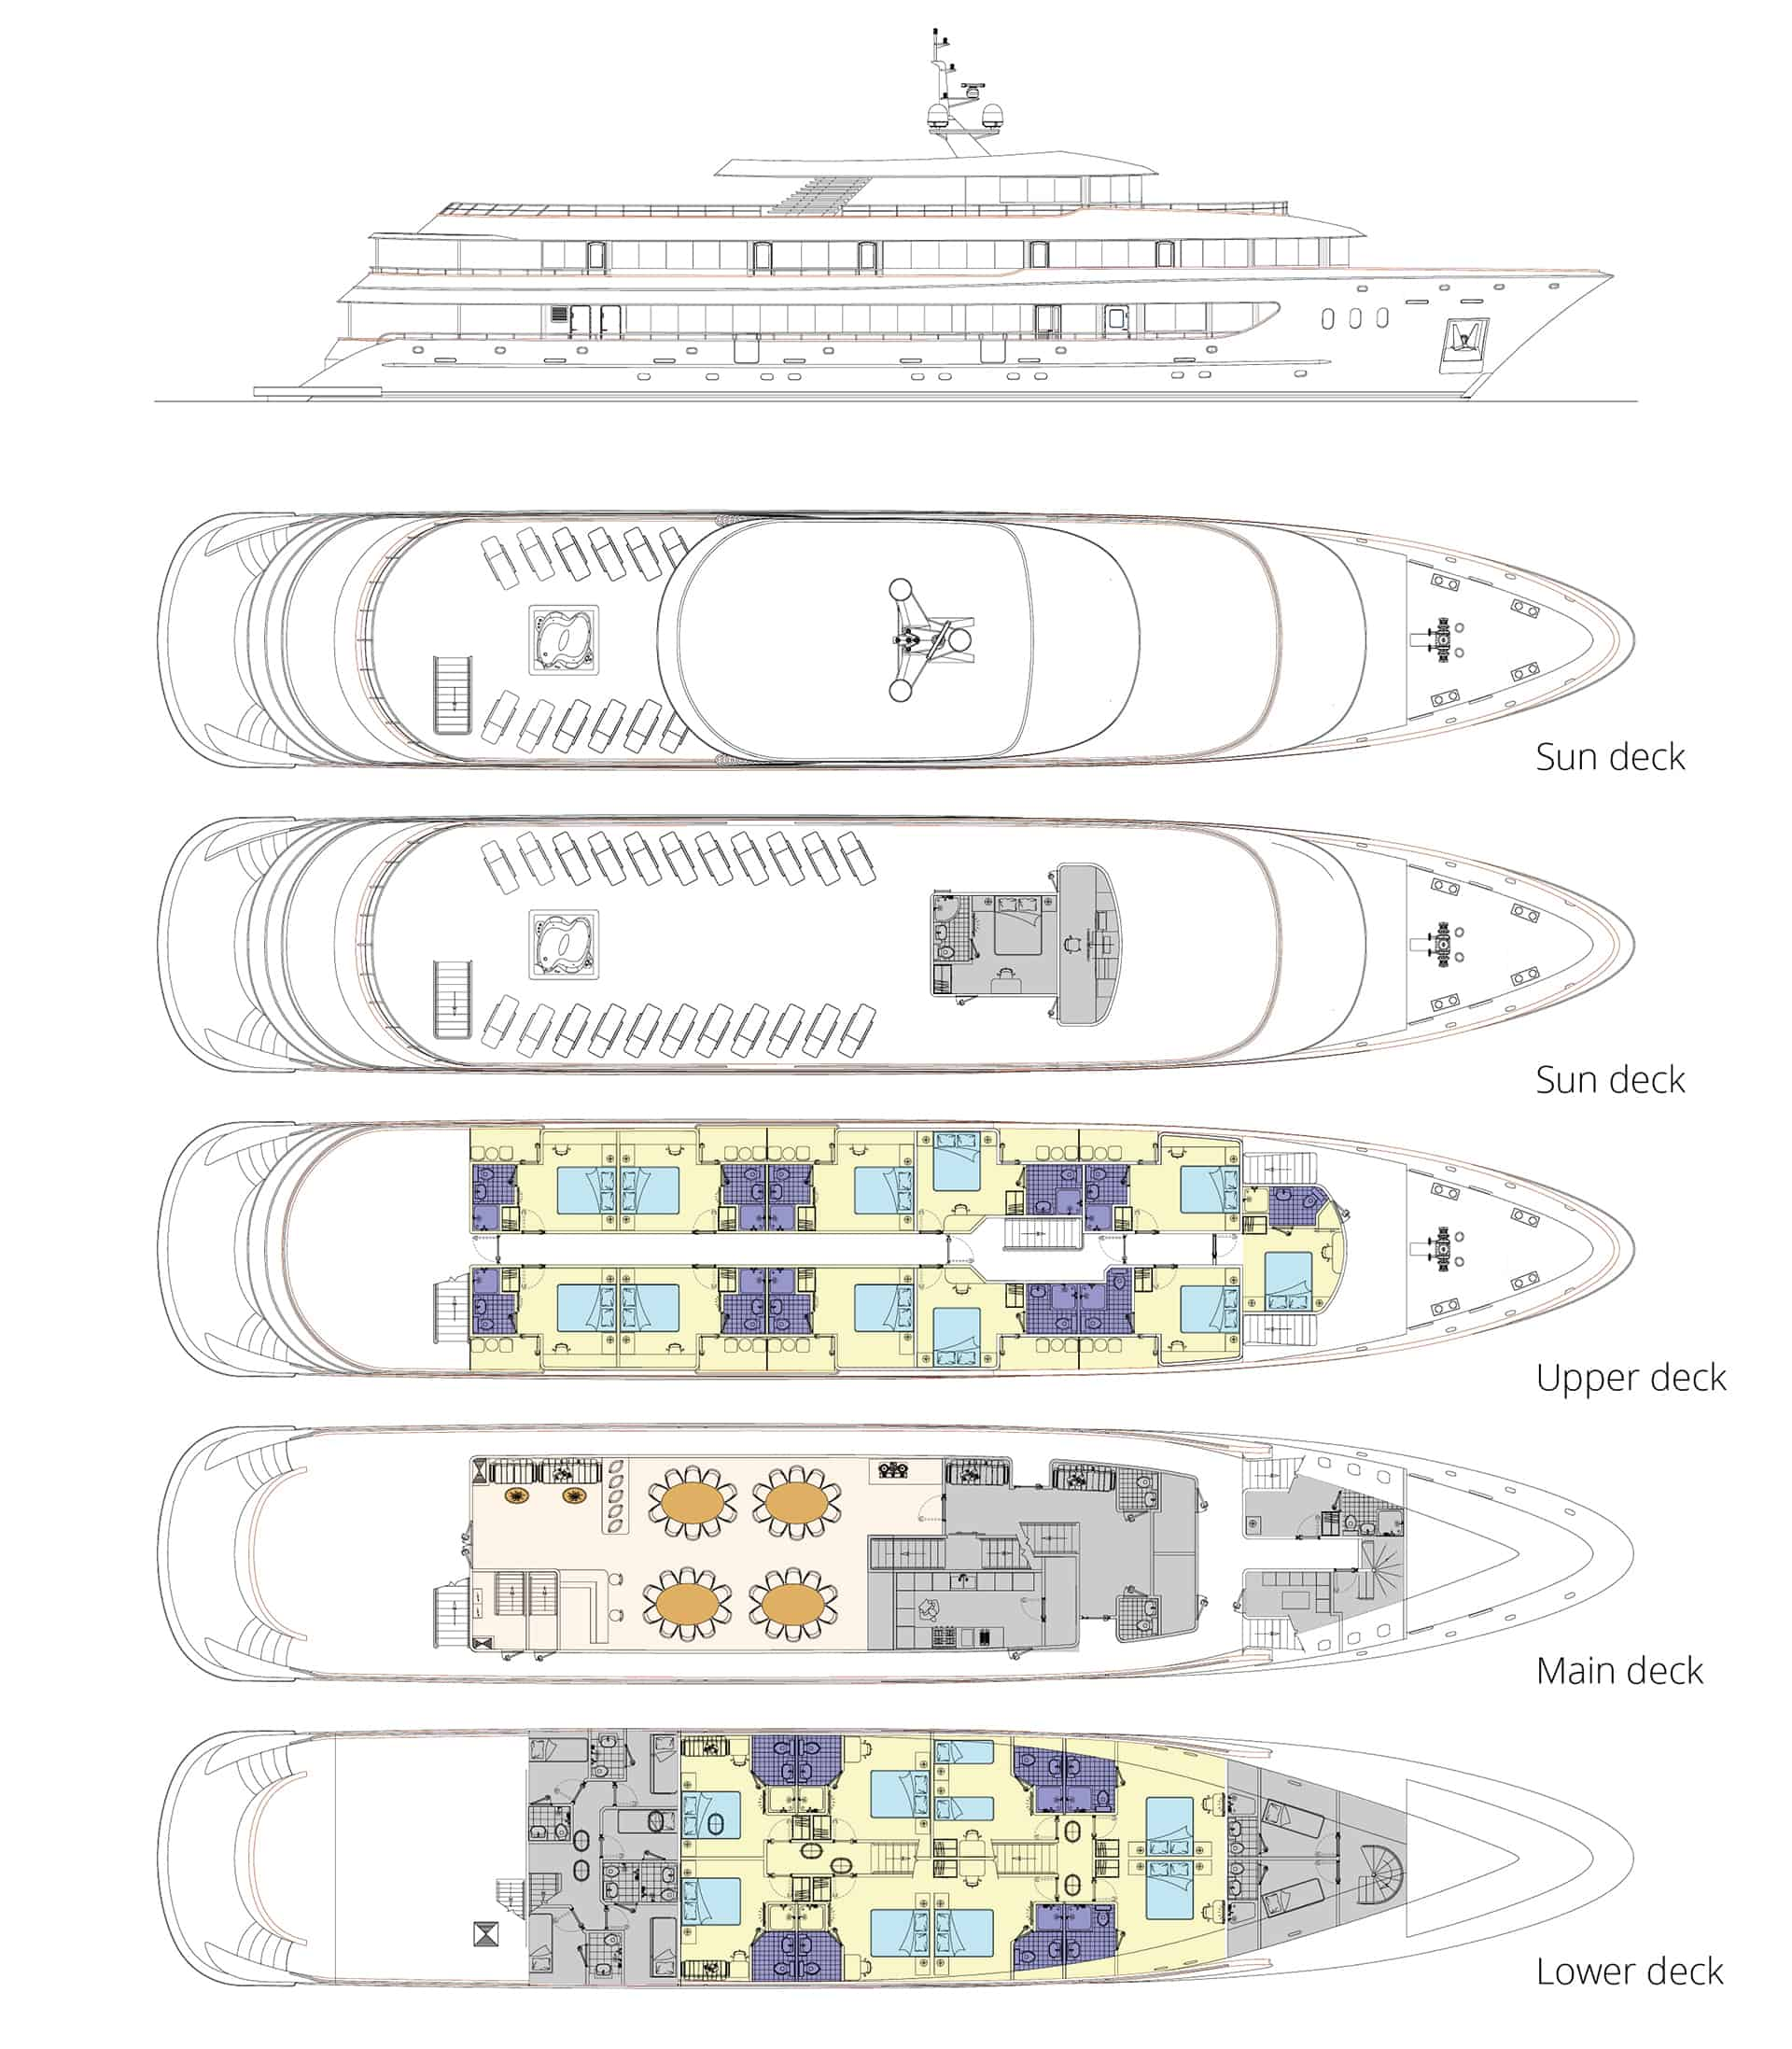 Deck plan of Rhapsody Croatia boutique yacht showing 5 decks with cabins on the Lower and Upper Decks.